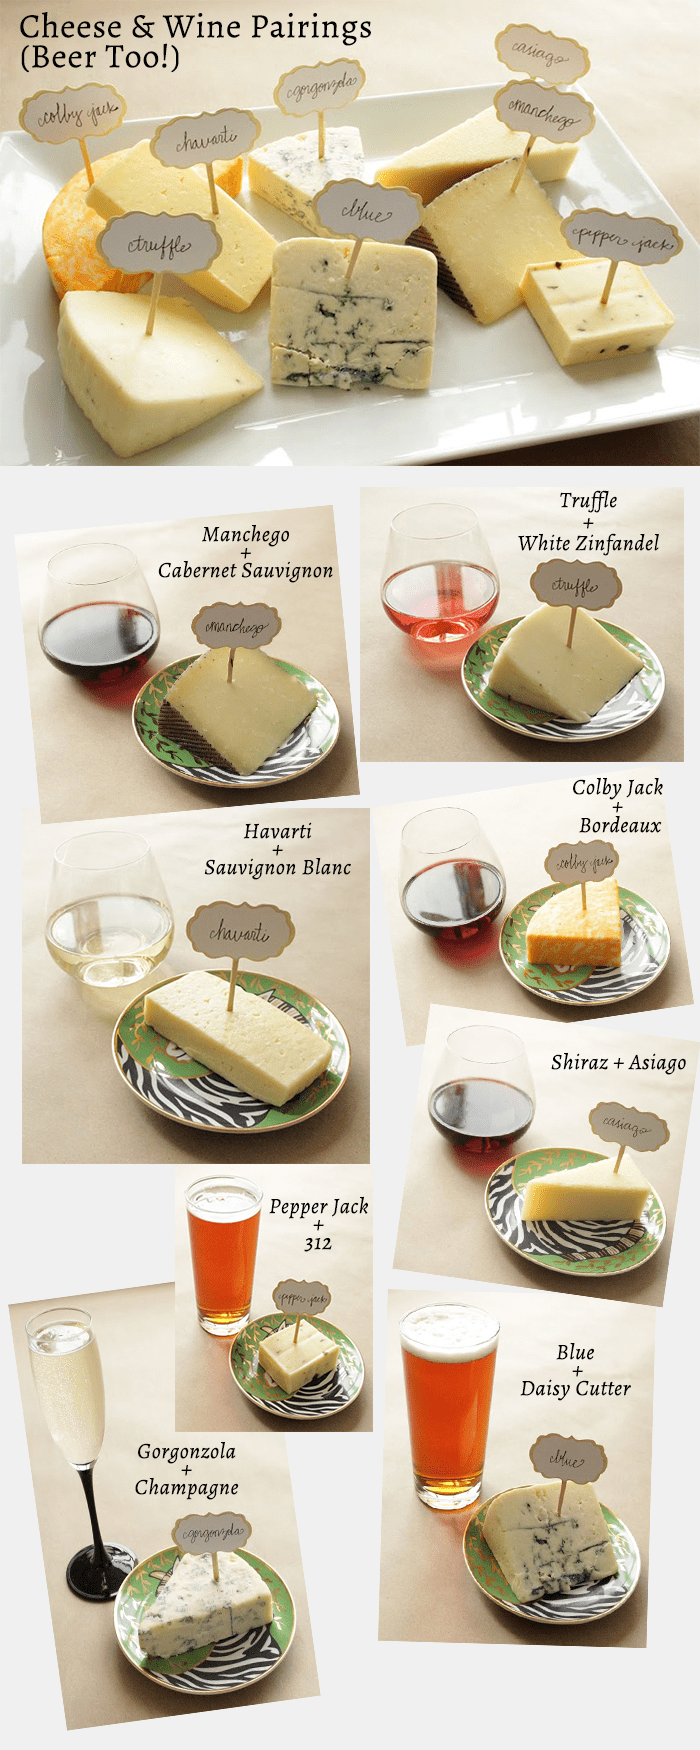 Cheese-Plate & Spring Wine \u0026 Cheese Pairings - Glitter \u0026 Bubbles